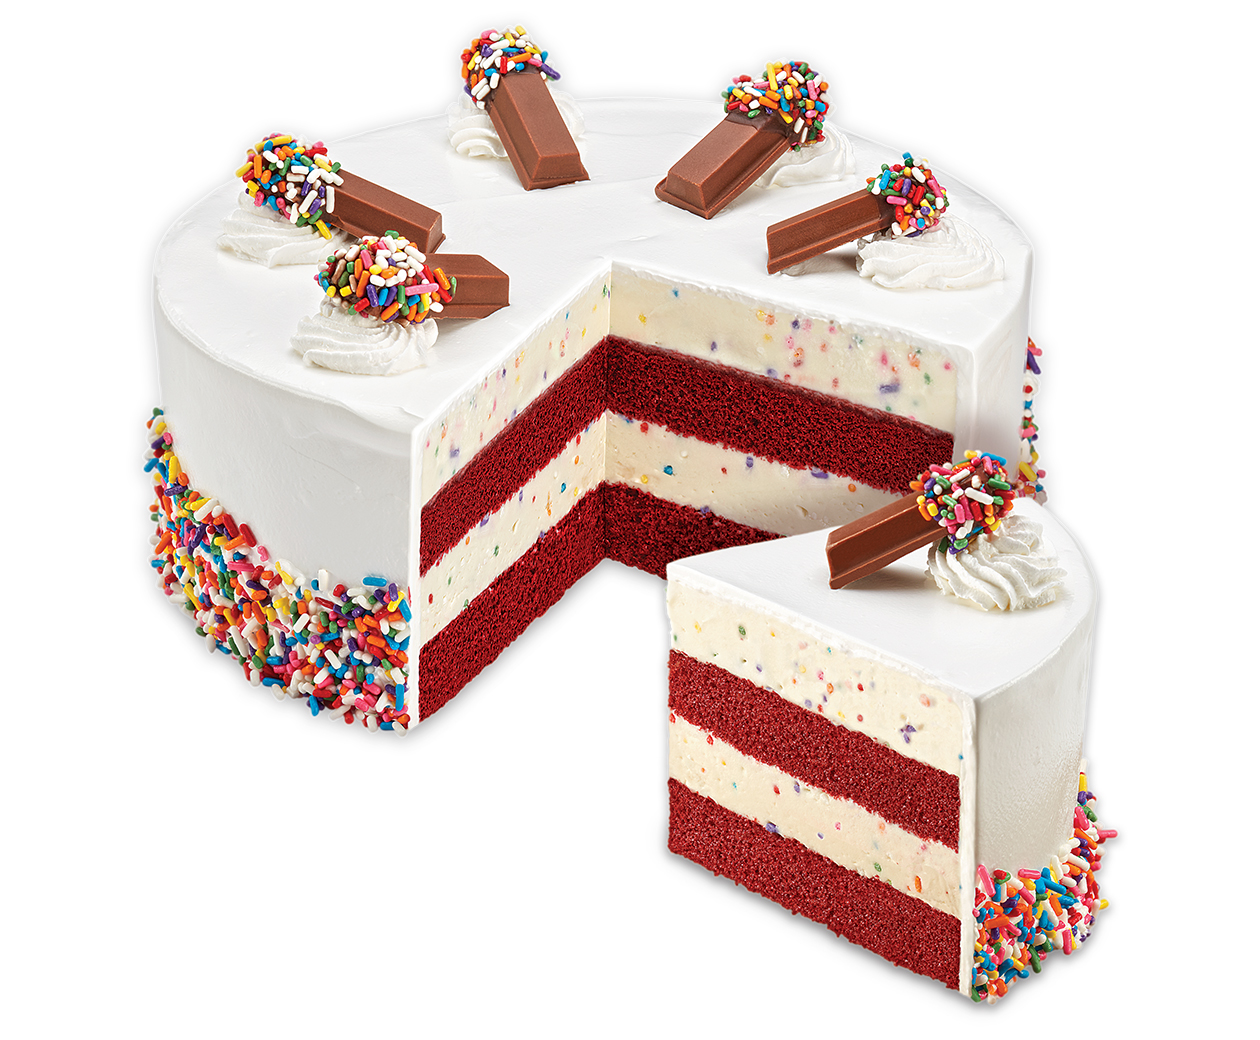 Cakes made with your favorite Ice Cream at Cold Stone Creamery